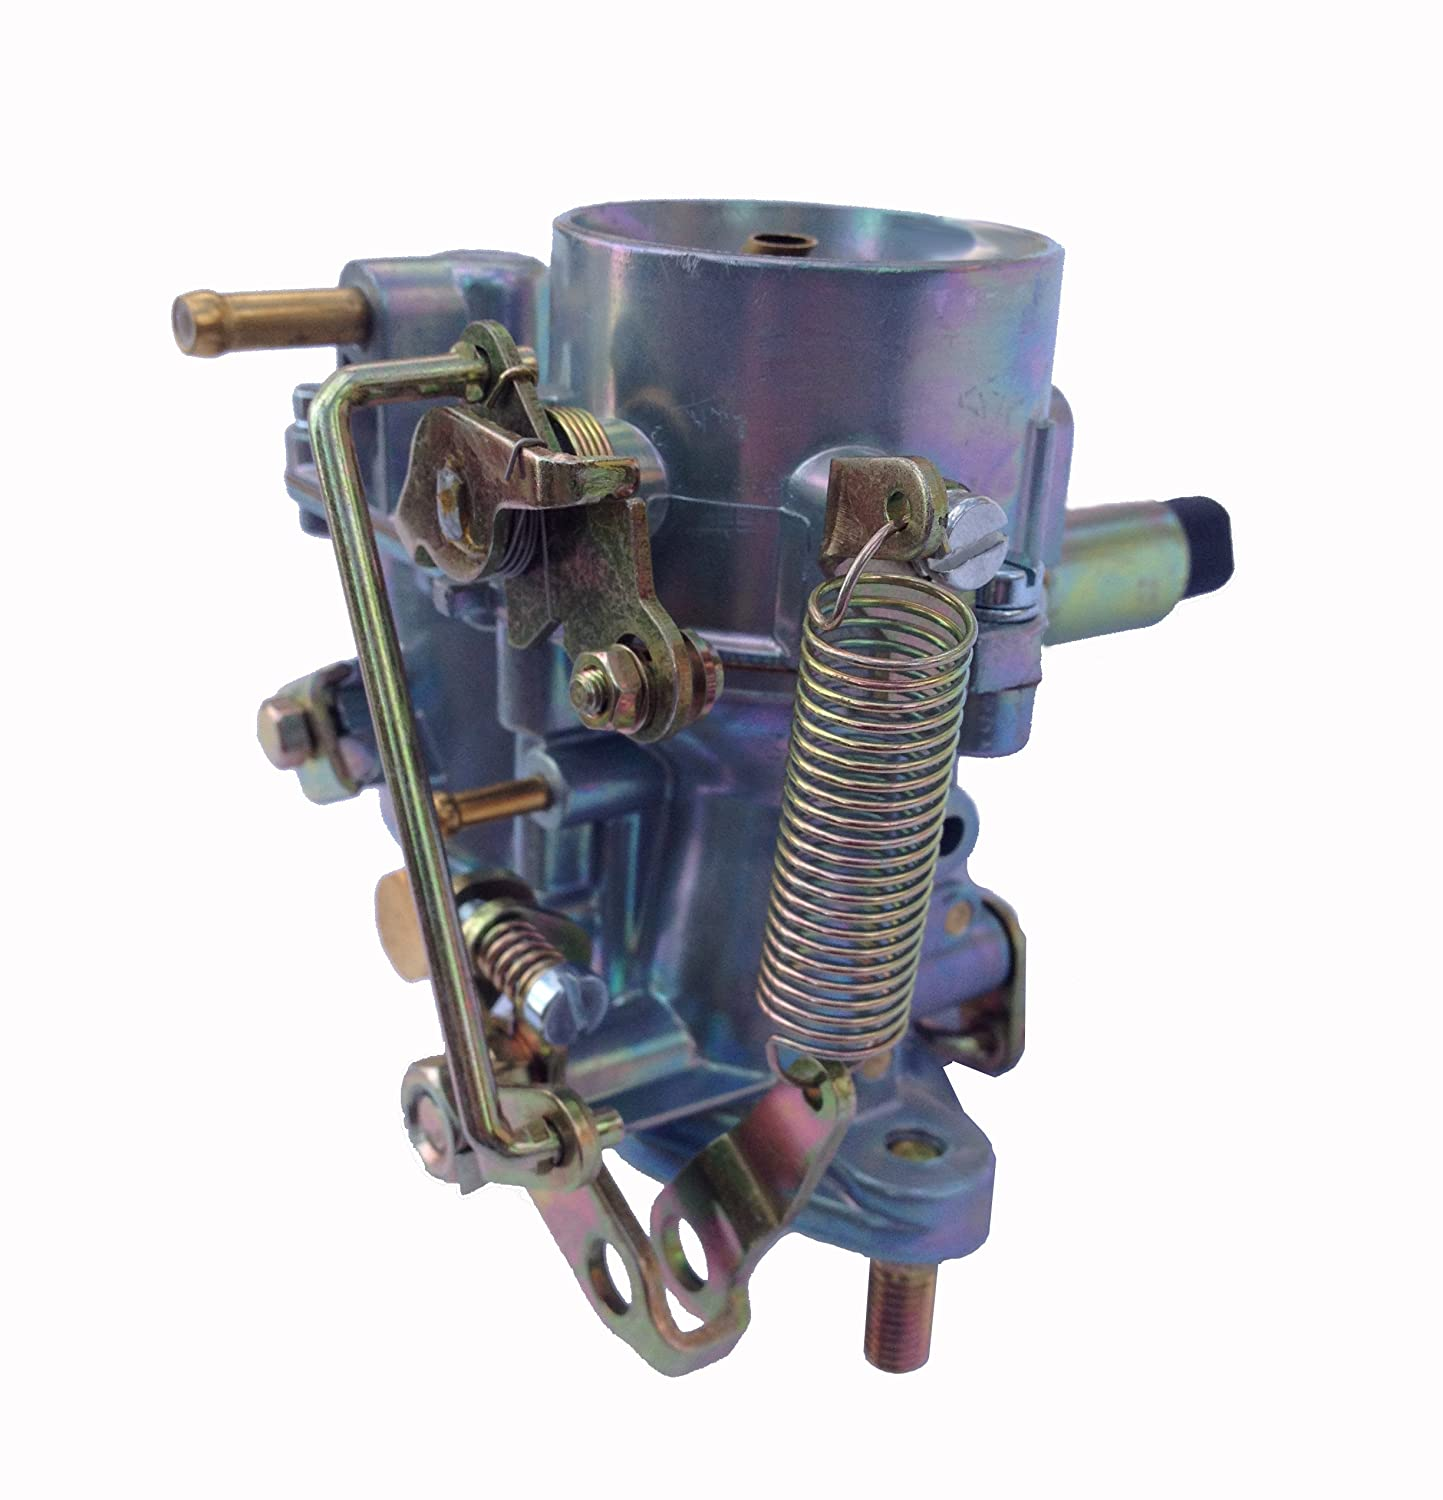 Vw Bug Carburetor 30pic Volkswagen Bus Ghia 30 Pic Beetle And Karmann Engine Electrical System Troubleshooting Carburator With Manual Choke Automotive